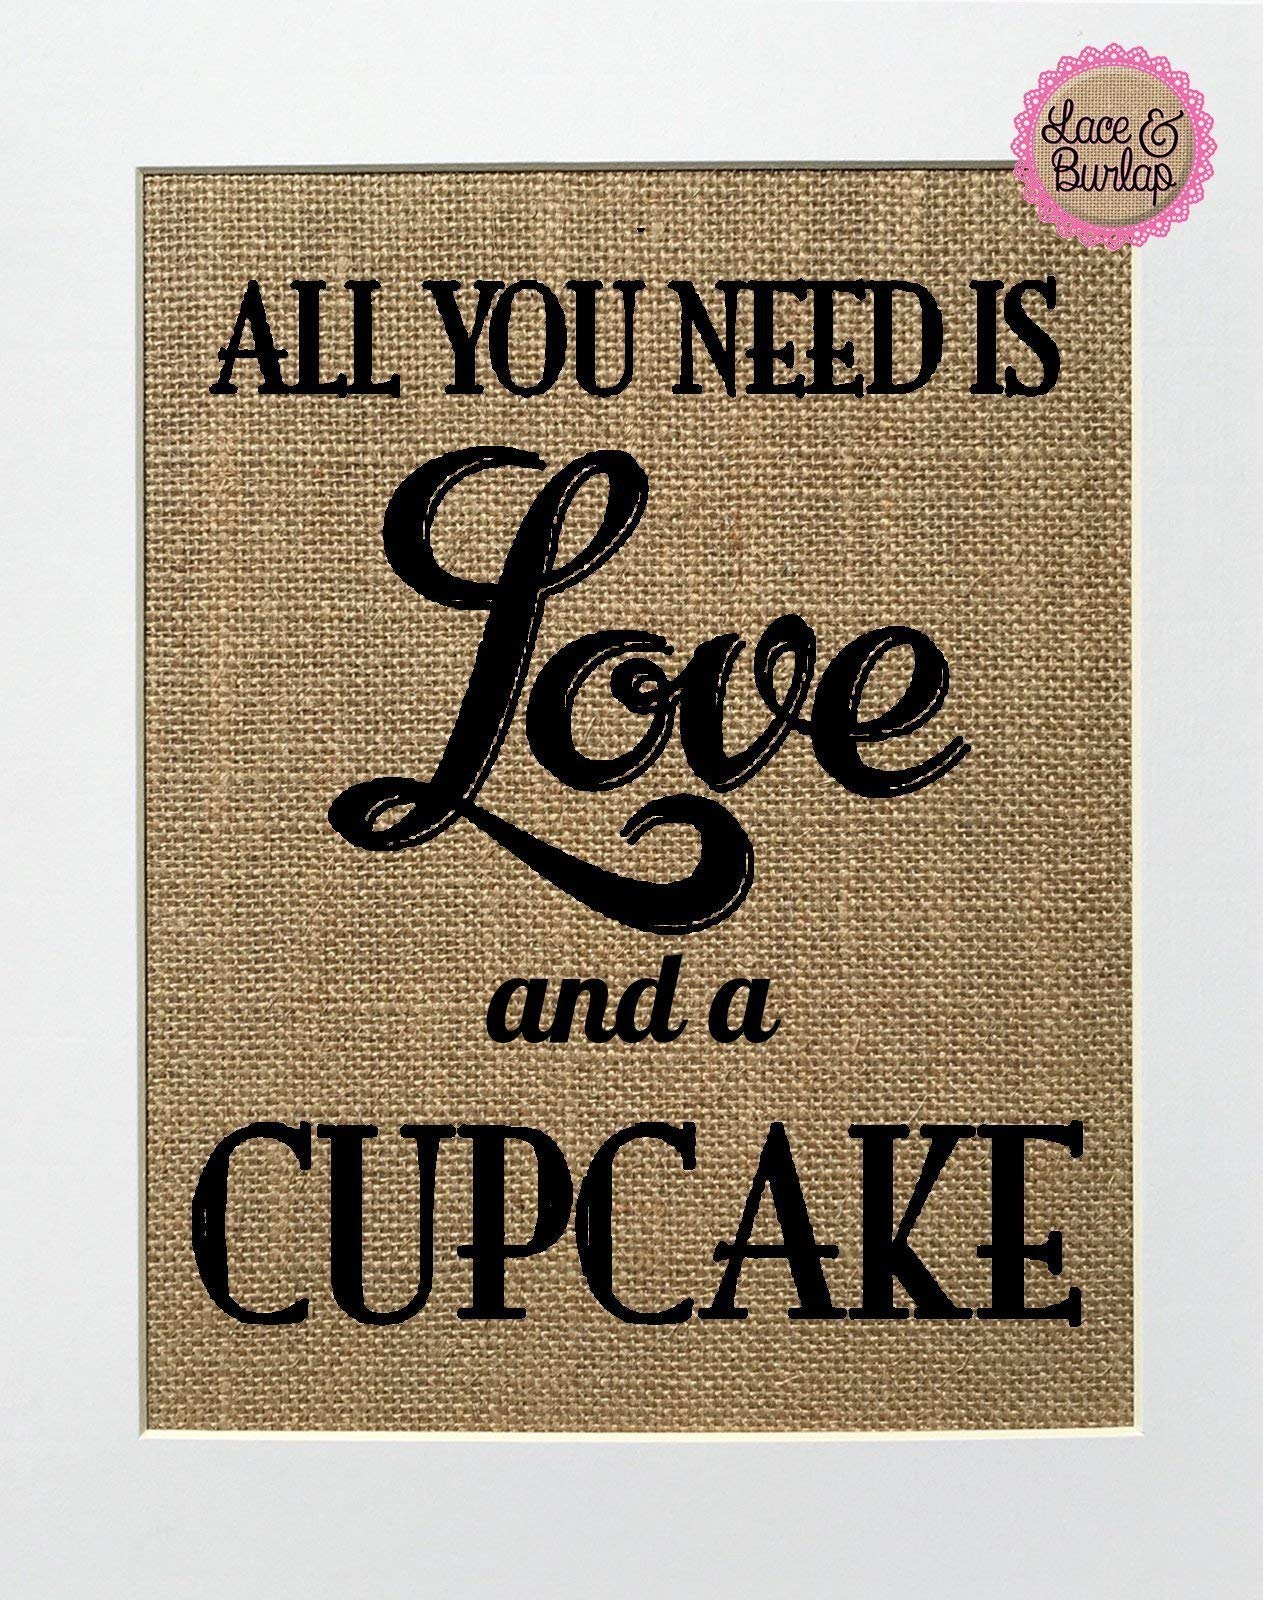 8x10 UNFRAMED All You Need Is Love And A Cupcake/Burlap Print Sign/Rustic Country Shabby Chic Vintage Wedding & Party Decor Sign Love House Sign Wedding Gift Home Decor Sweets Lover by Lace & Burlap Shop